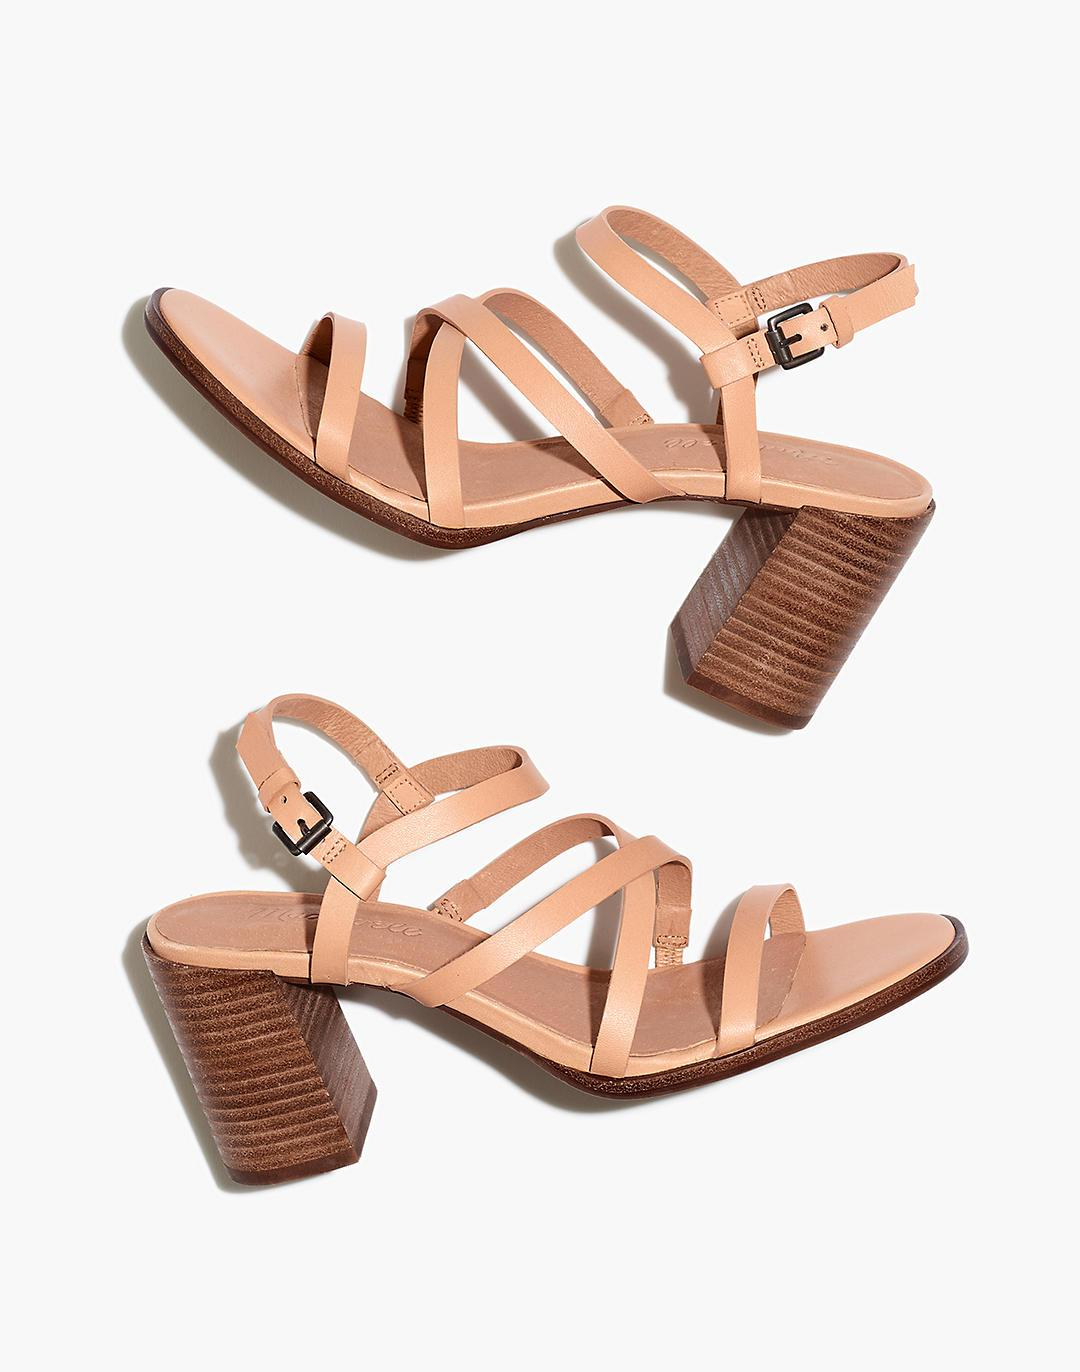 The Edie Sandal in Leather